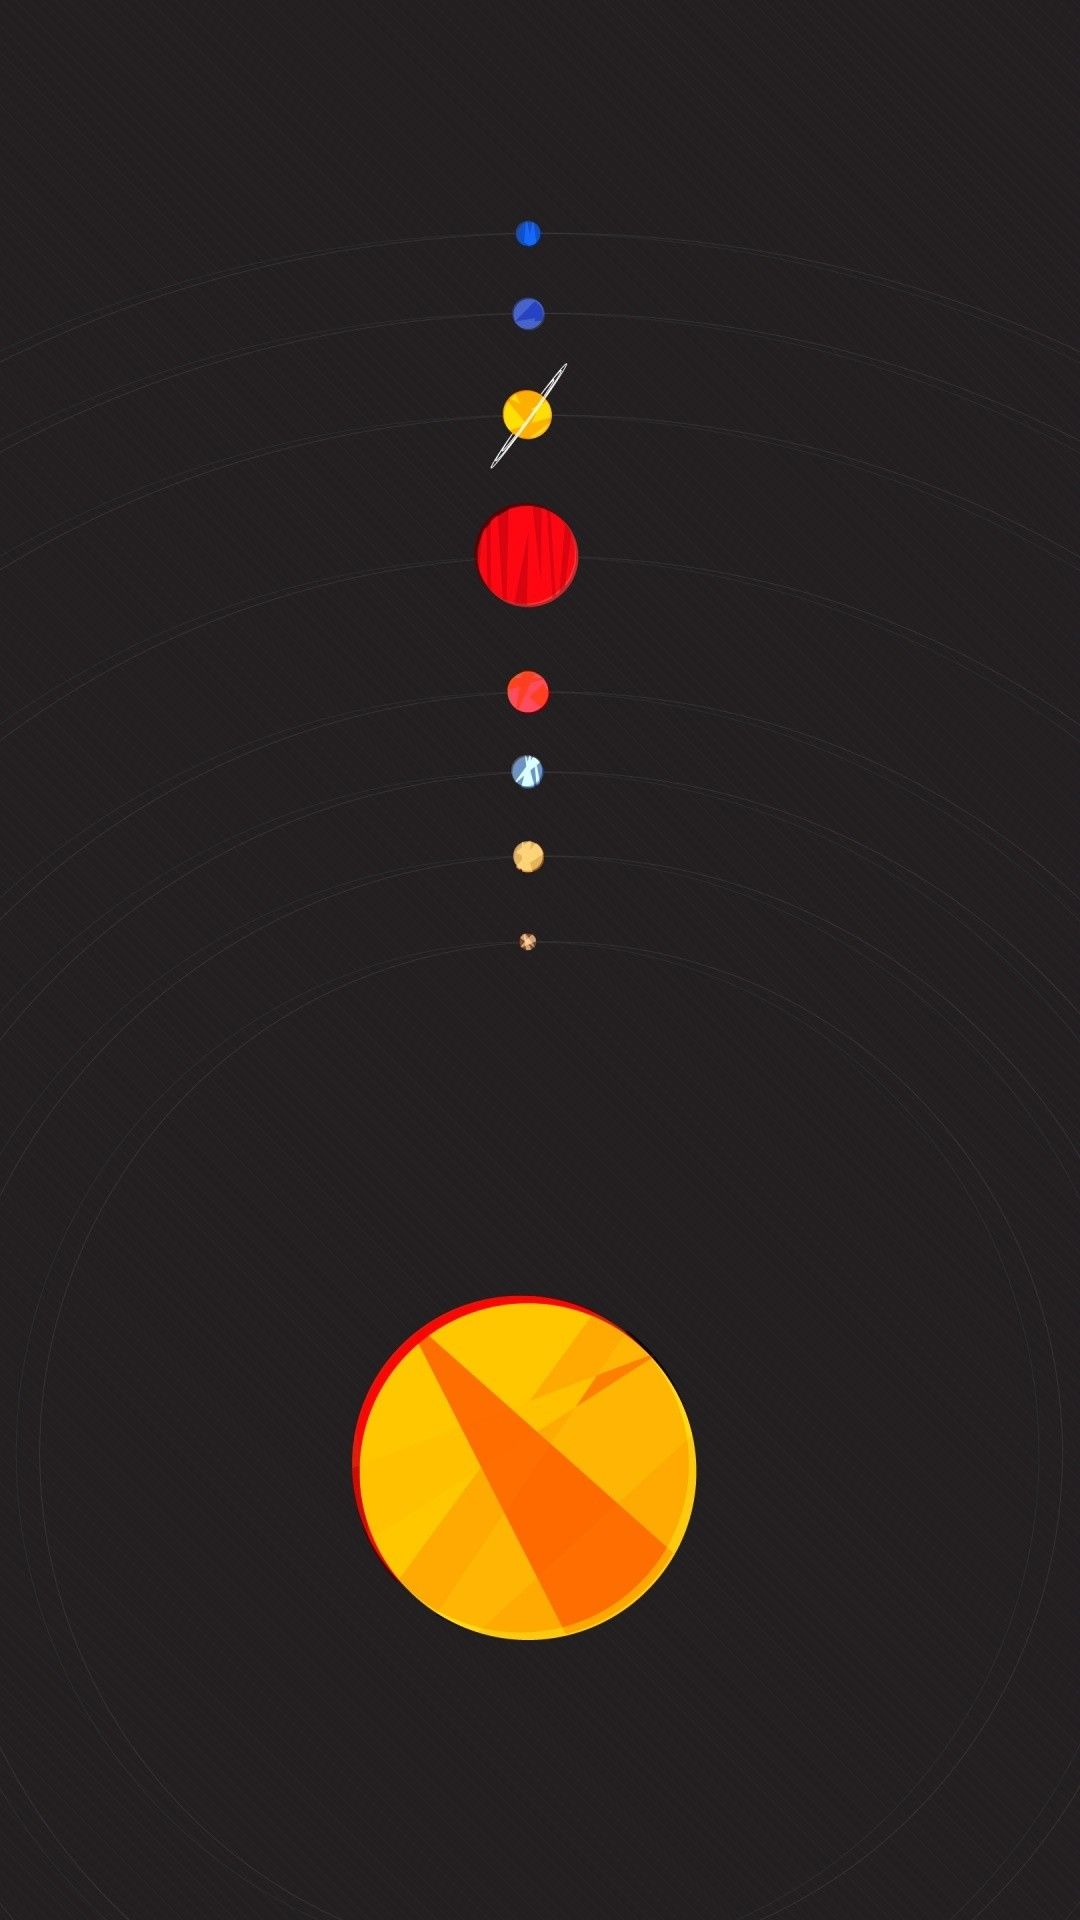 1080x1920 71+ Solar System Wallpapers on WallpaperPlay